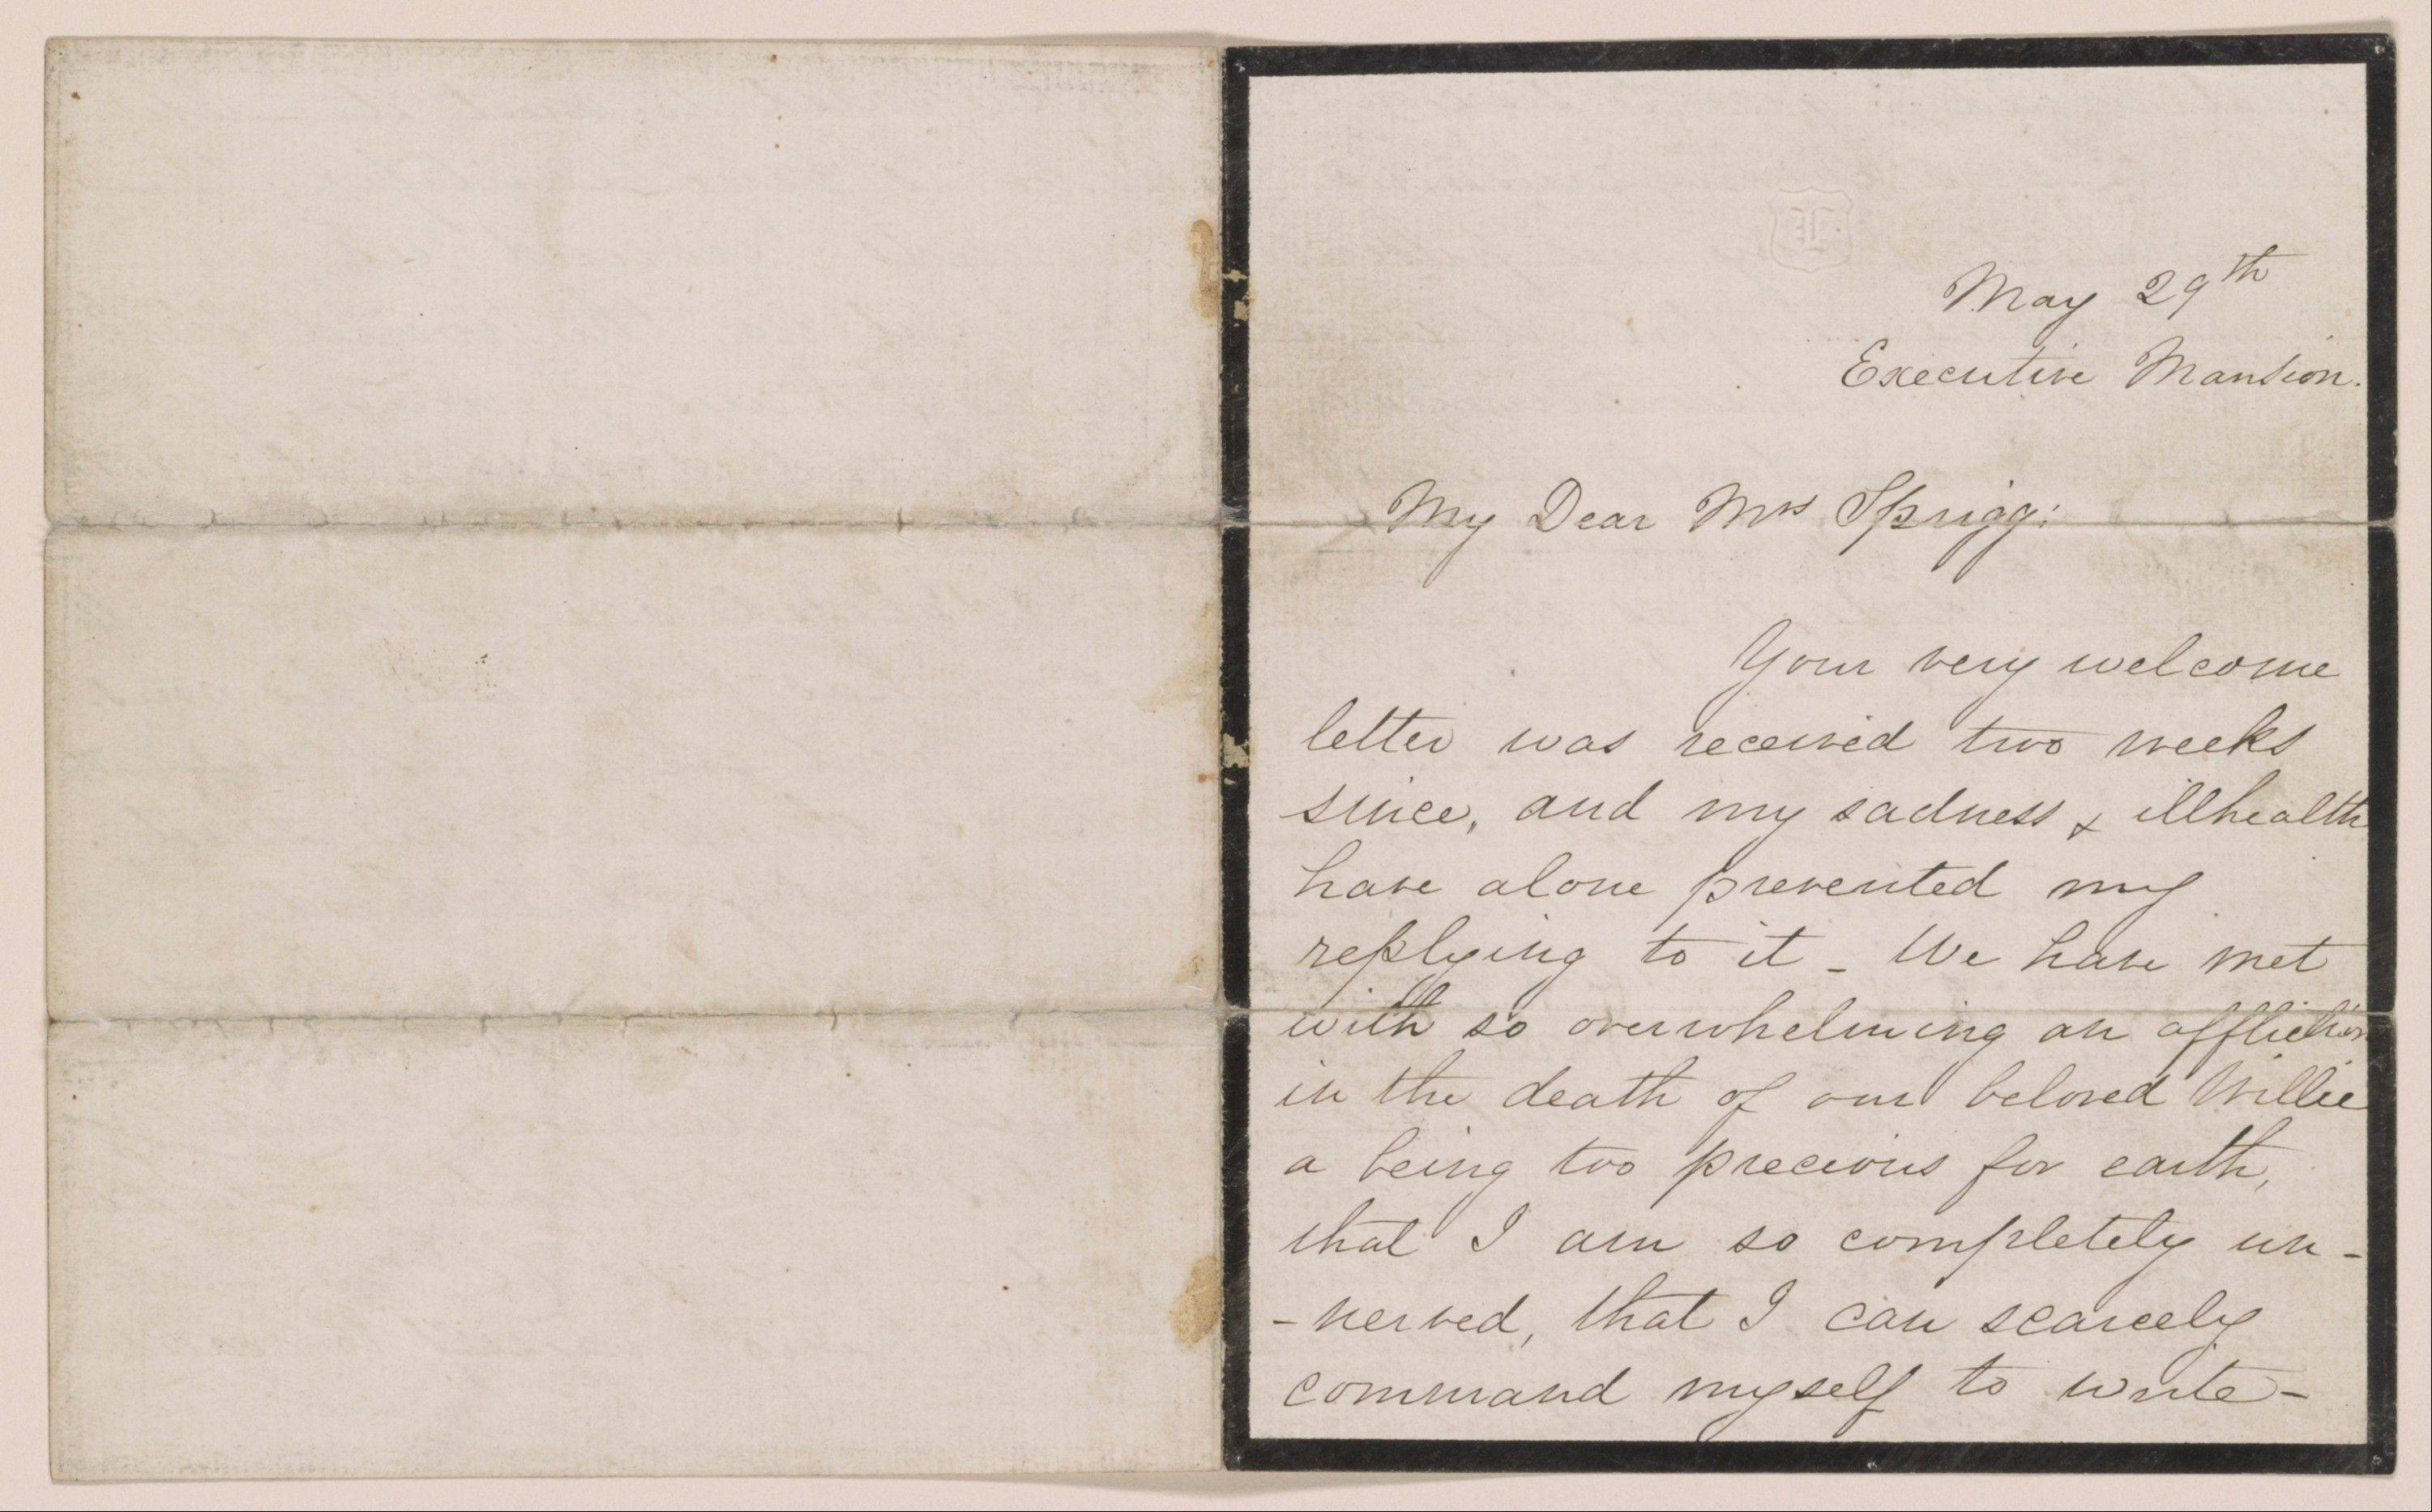 A letter written by Mary Todd Lincoln to Julia Ann Sprigg, May 29, 1862.